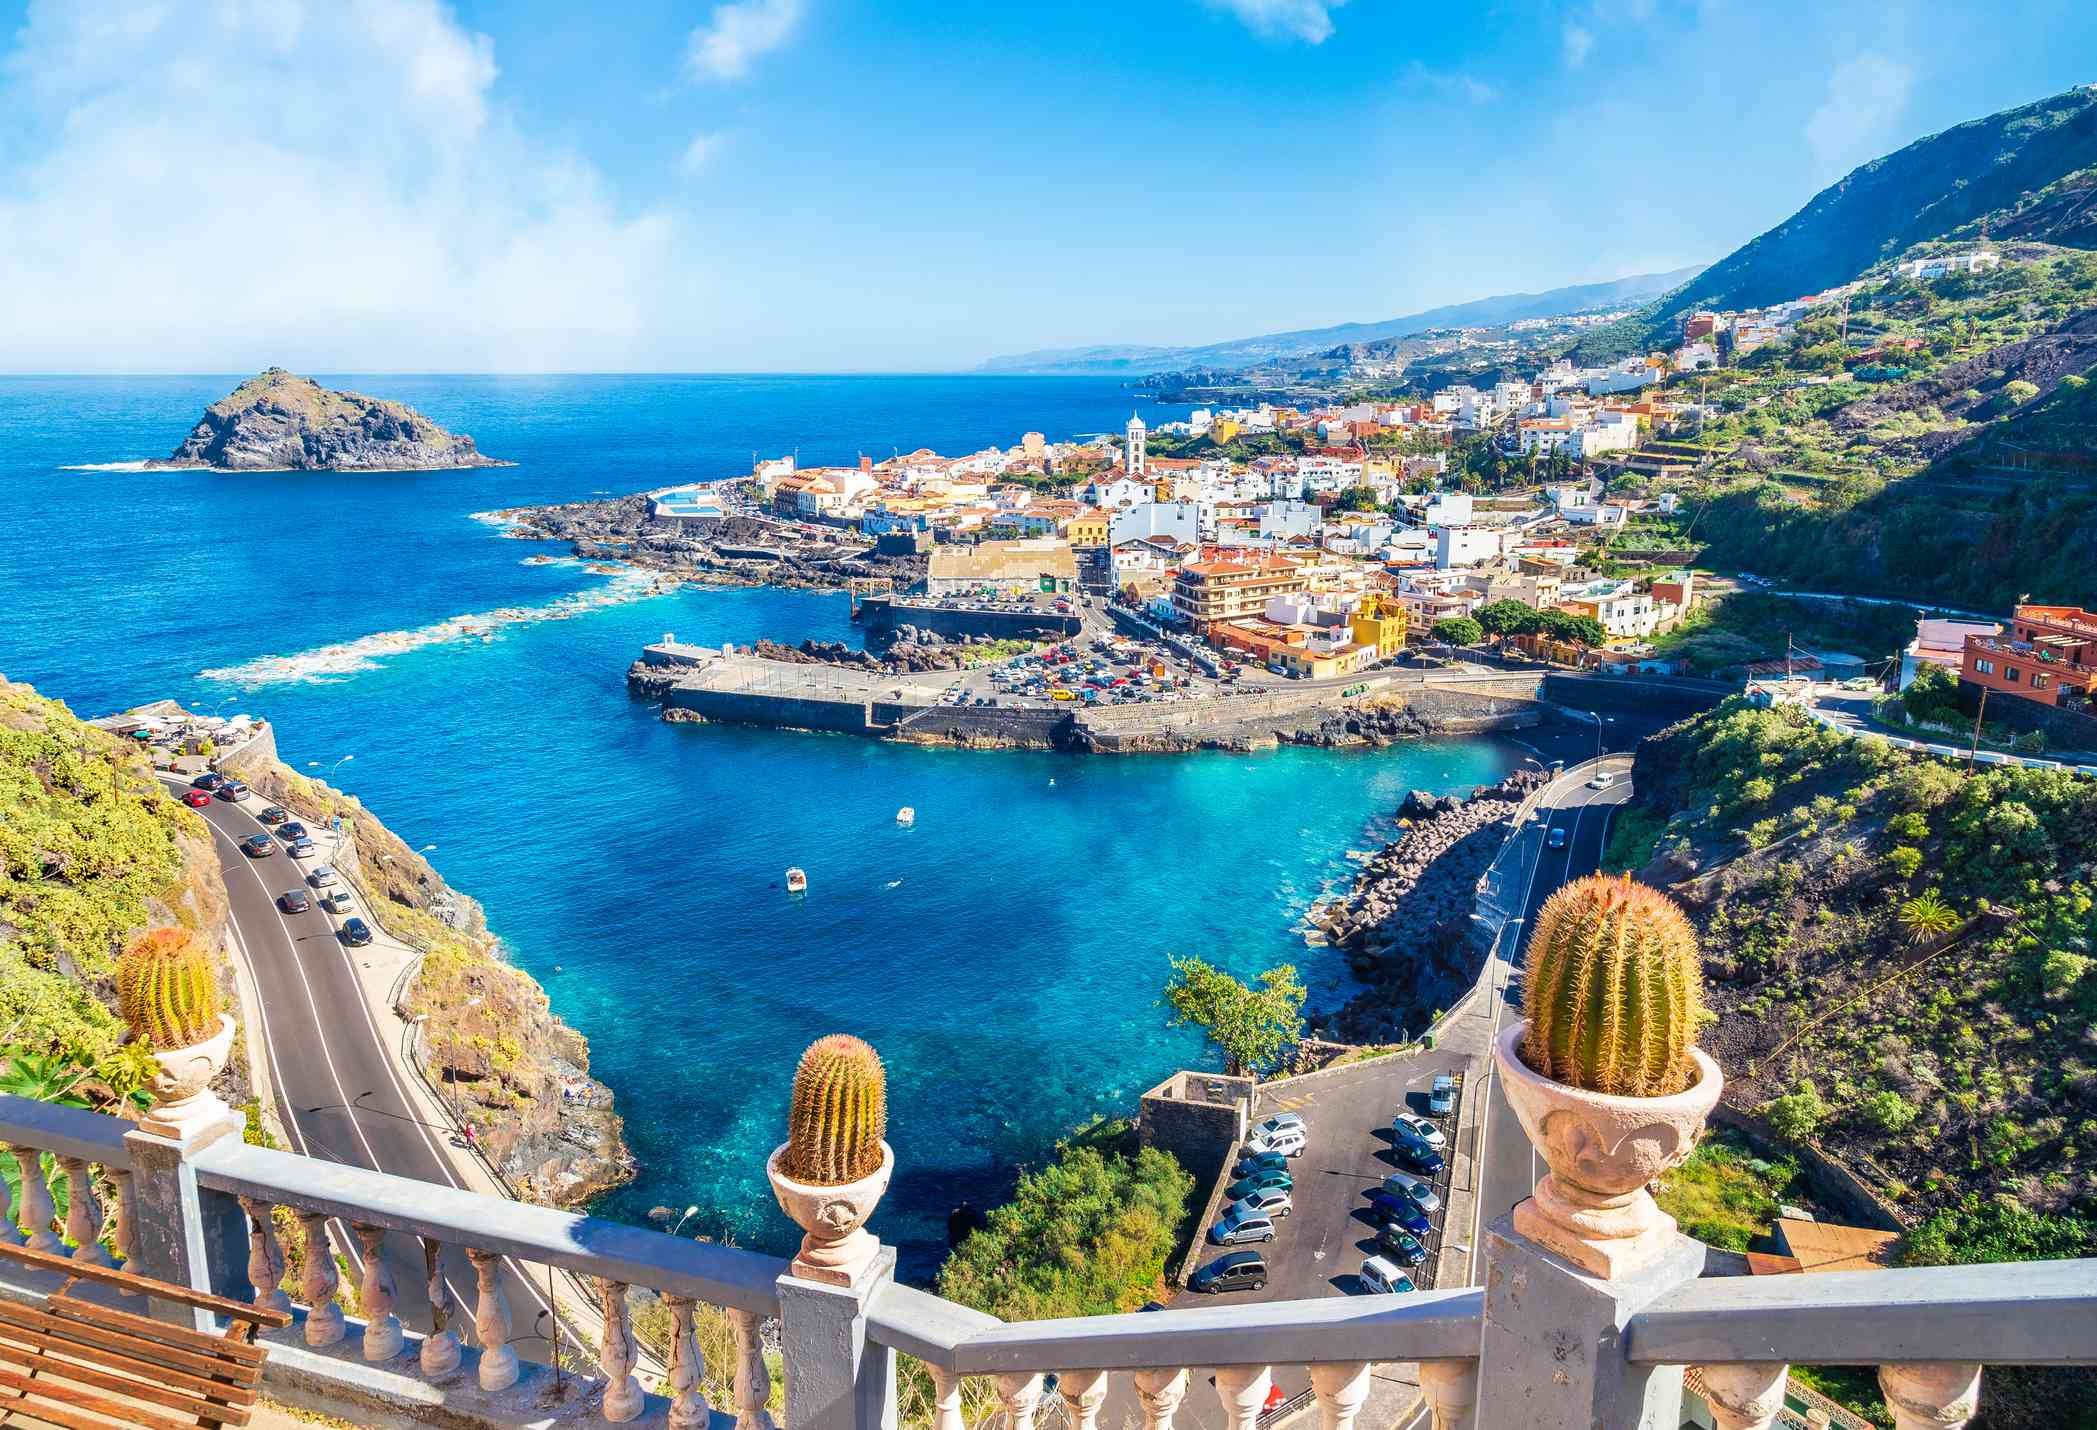 landscape of Canary Islands with blue water and cityscape with colorful buildings